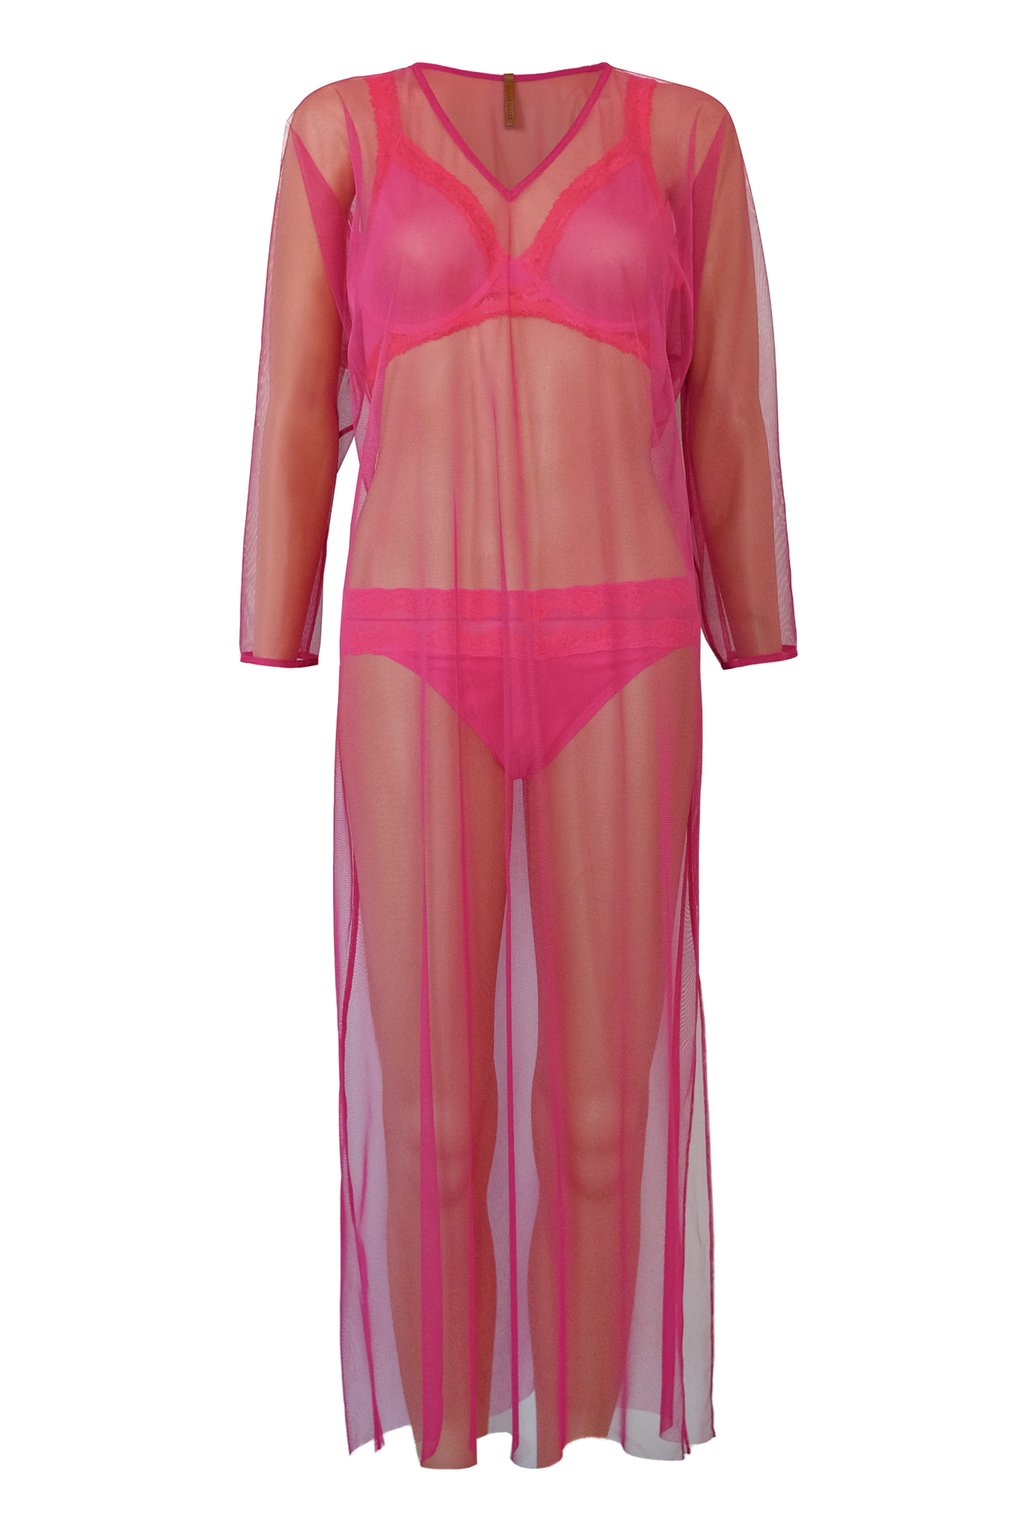 Sexy Mesh Caftan - Pink